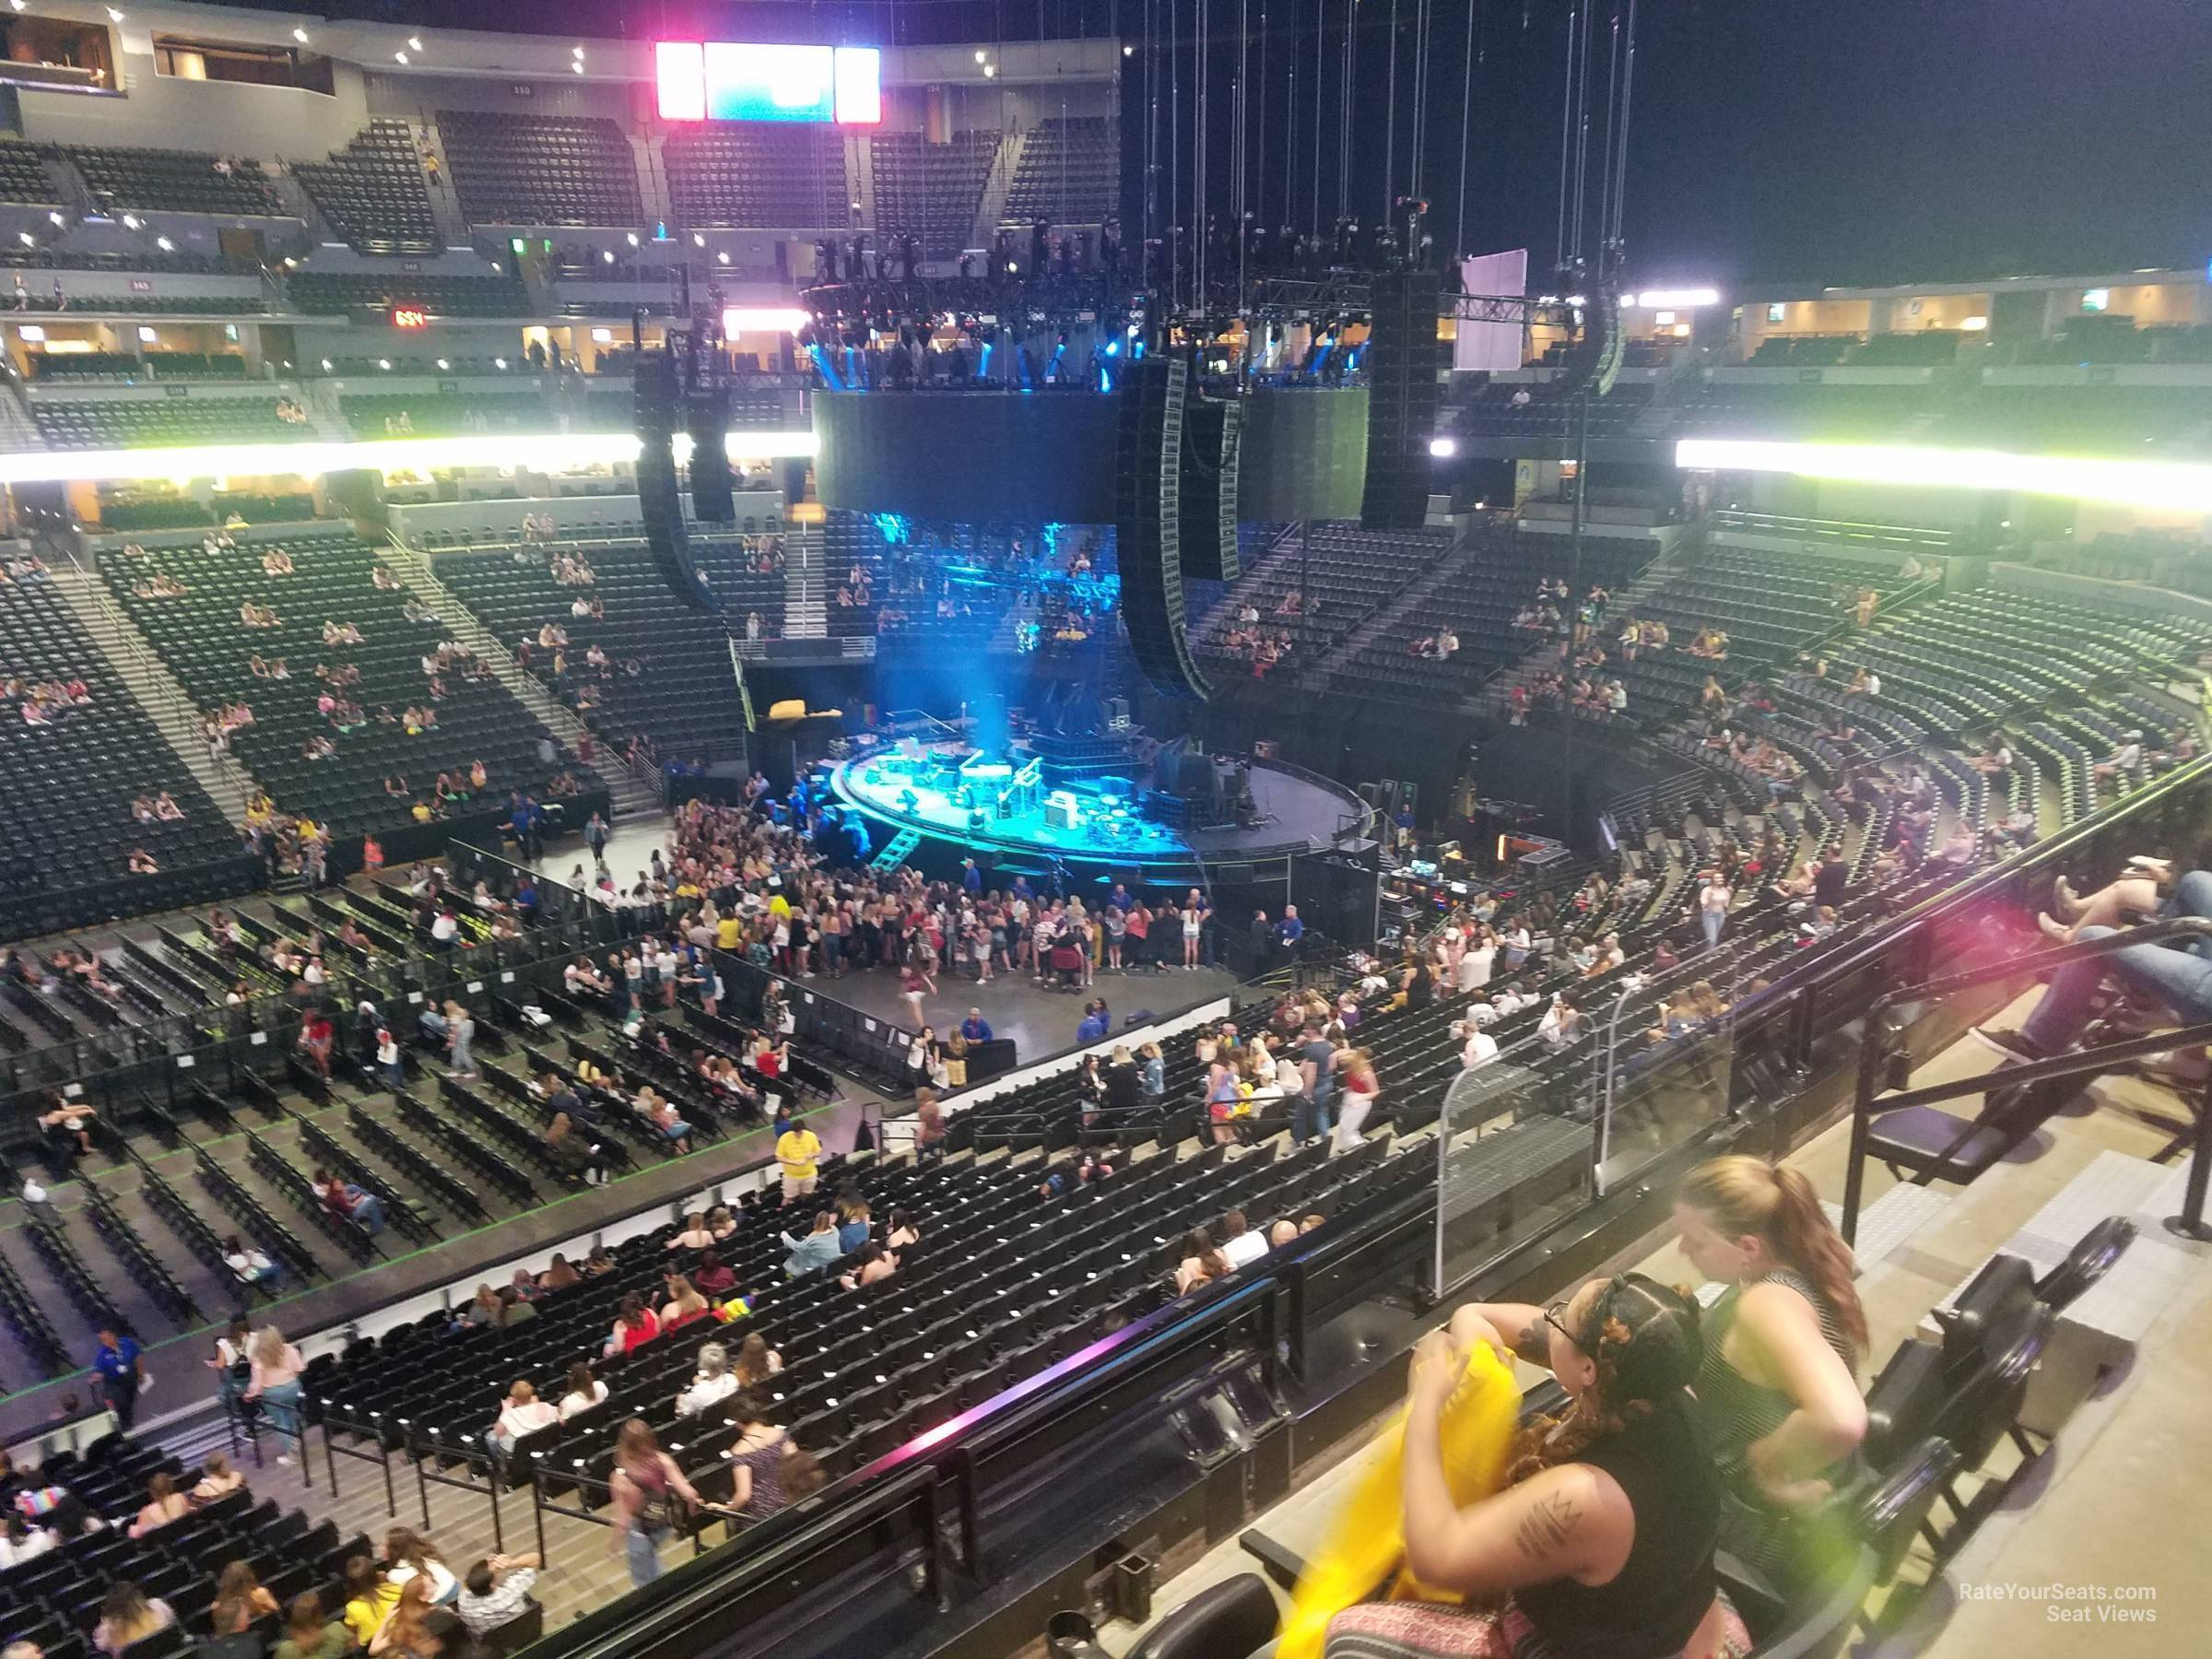 Pepsi Center: Pepsi Center Section 202 Concert Seating